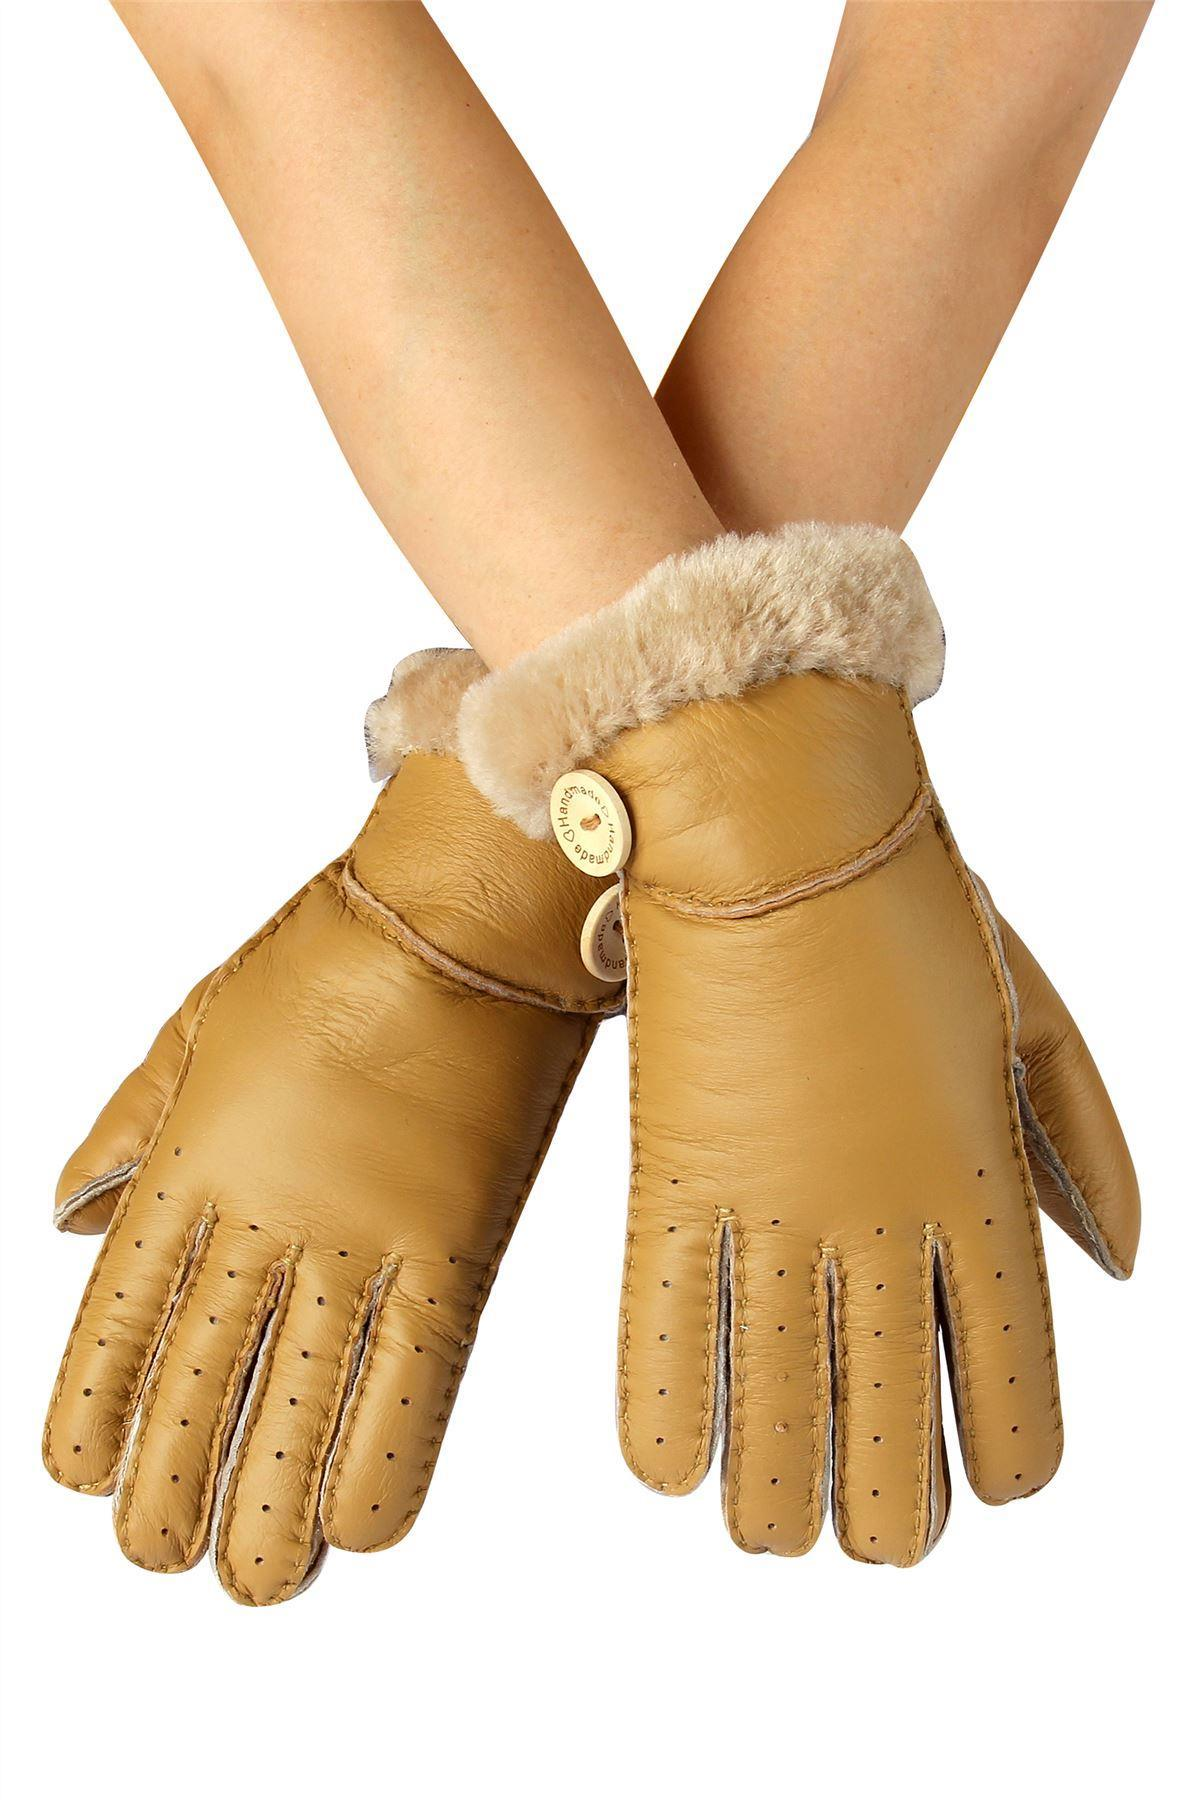 X Handmade Soft Leather Gloves- CAMEL  Leather Gloves